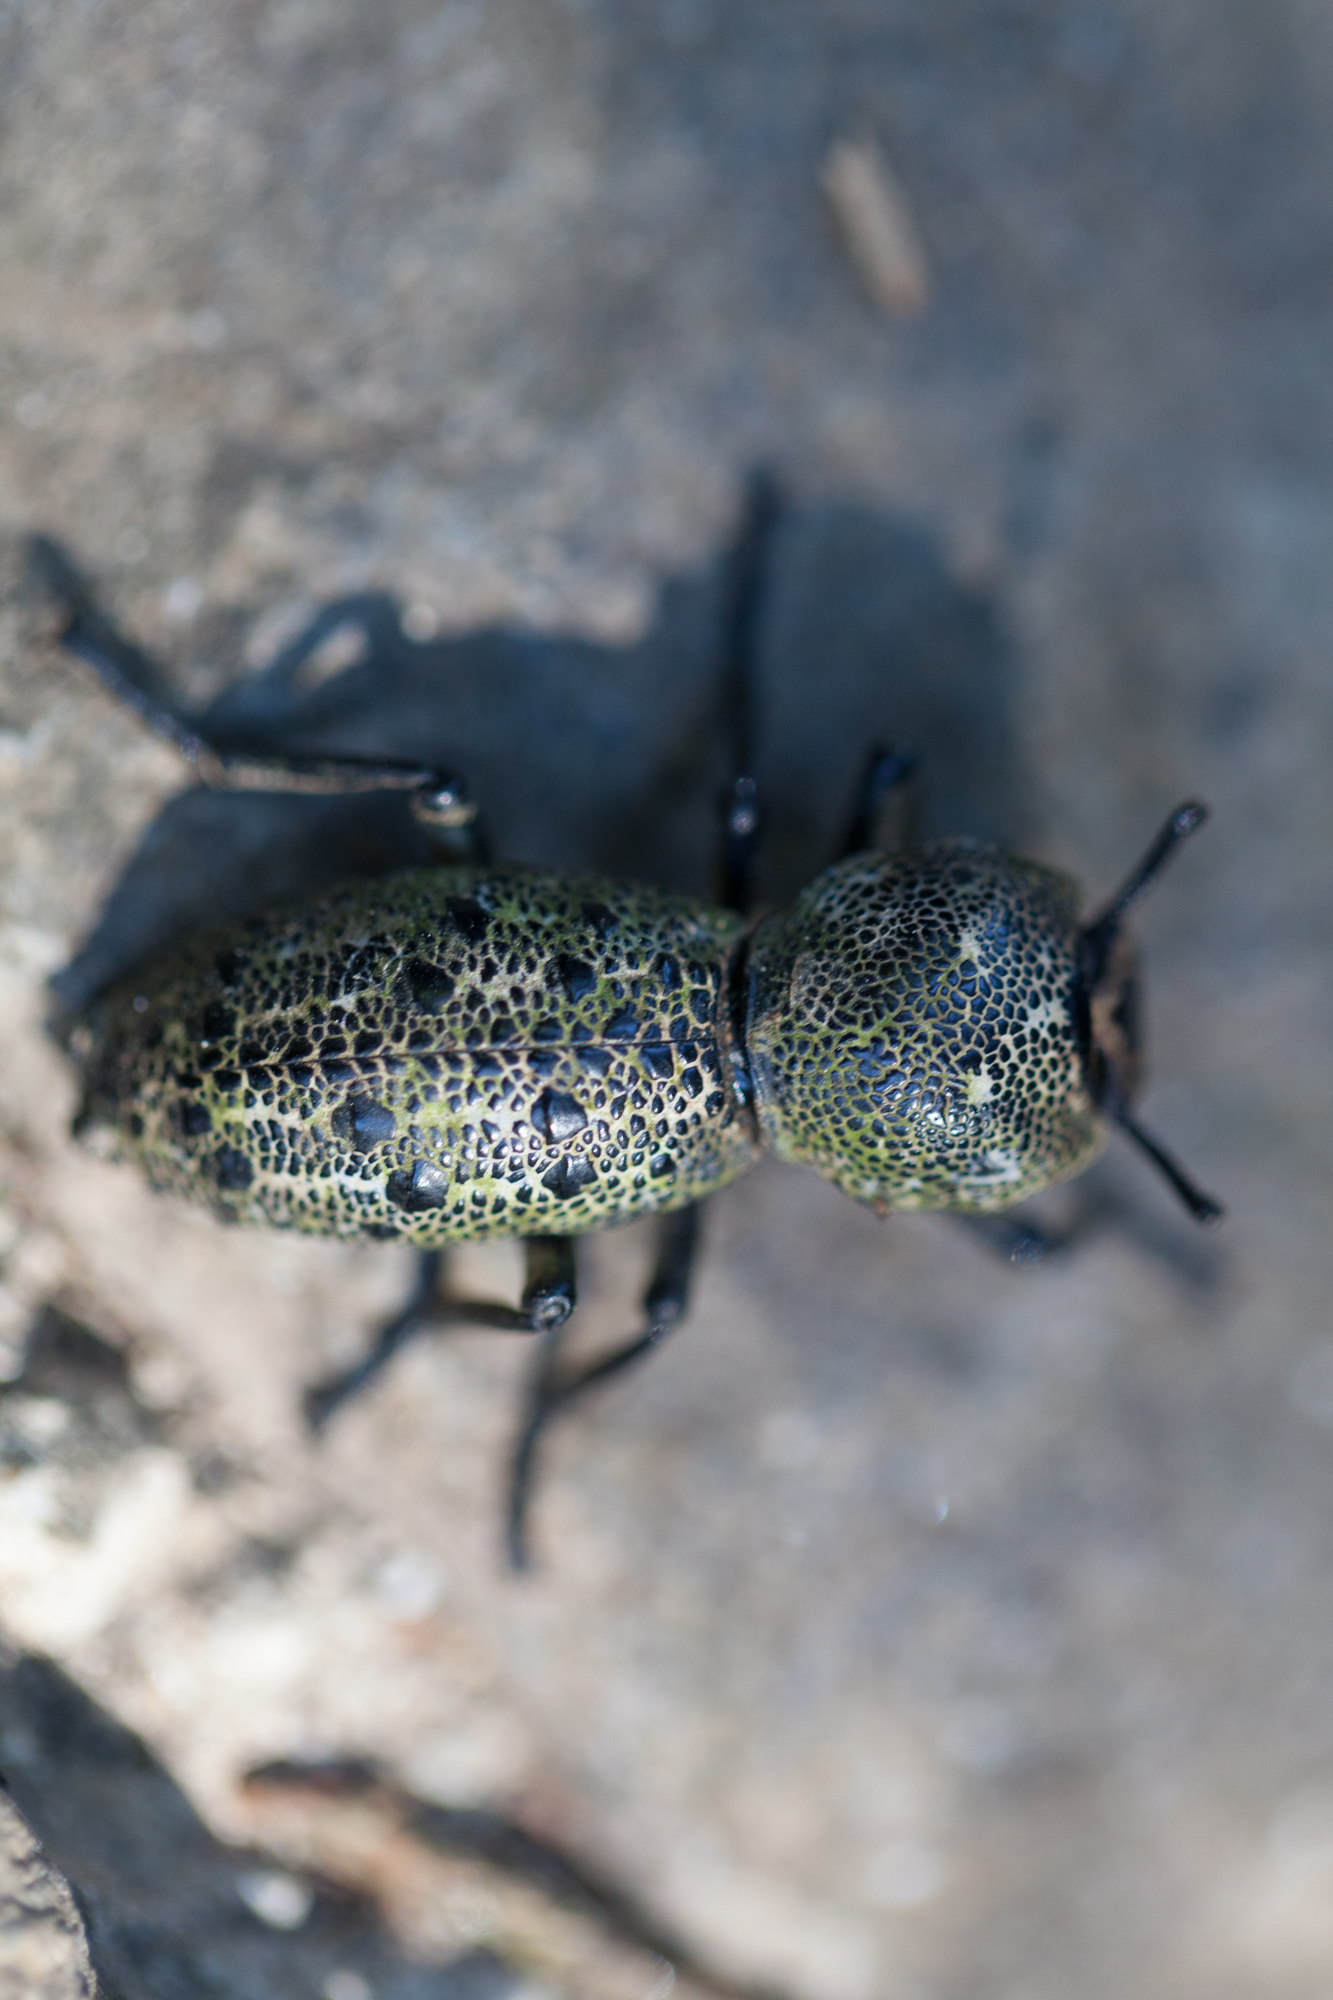 Ironclad beetle ( Zopherus jansoni ): The elytra are fused on this beetle and the antenna are relatively stubby, so I was able to make a firm identification on this bug.